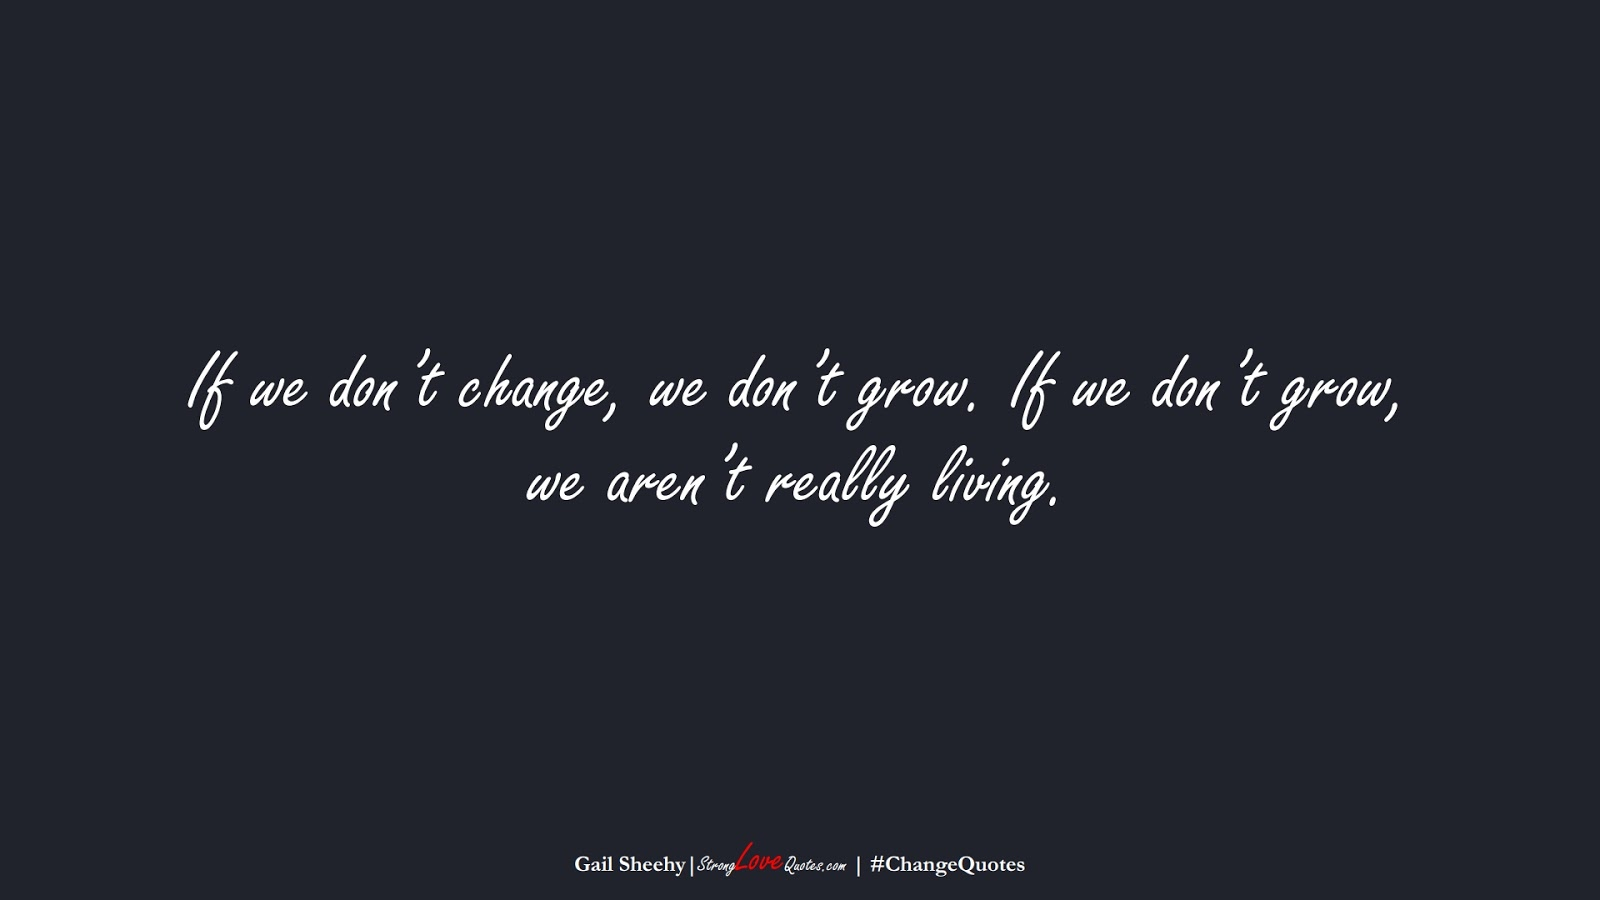 If we don't change, we don't grow. If we don't grow, we aren't really living. (Gail Sheehy);  #ChangeQuotes